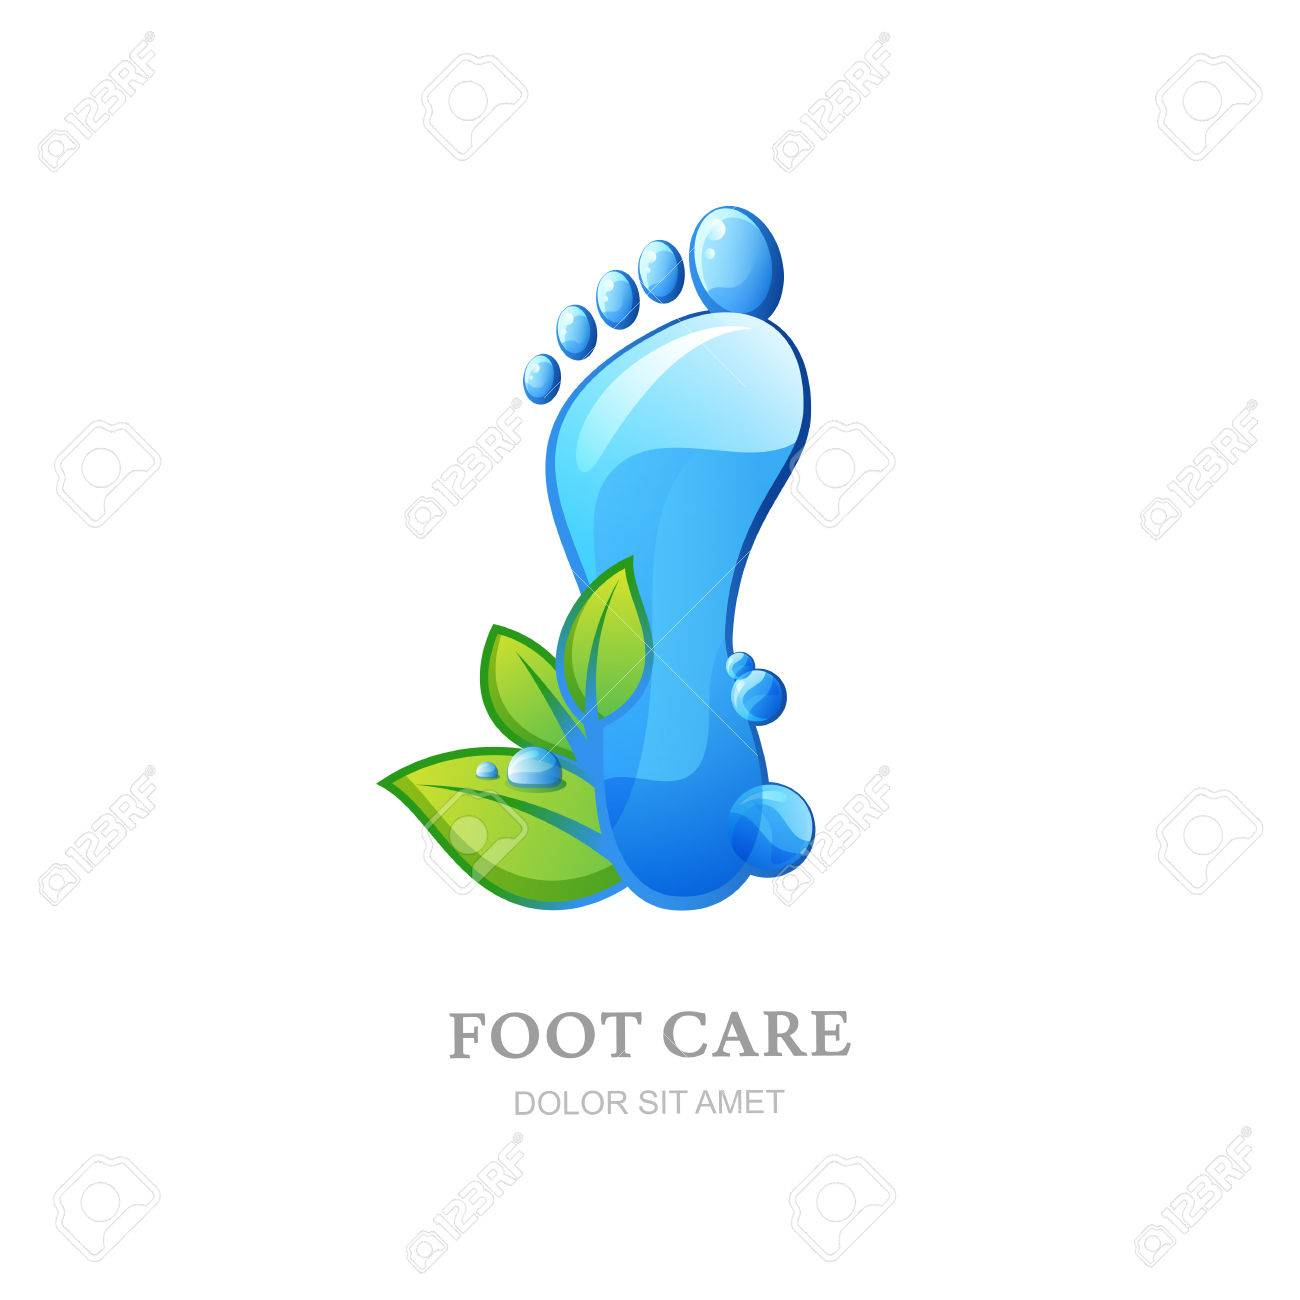 Female Sole With Clean Water Texture And Green Leaves Concept For Beauty Salon Pedicure Cosmetics Organic Body Care Spa